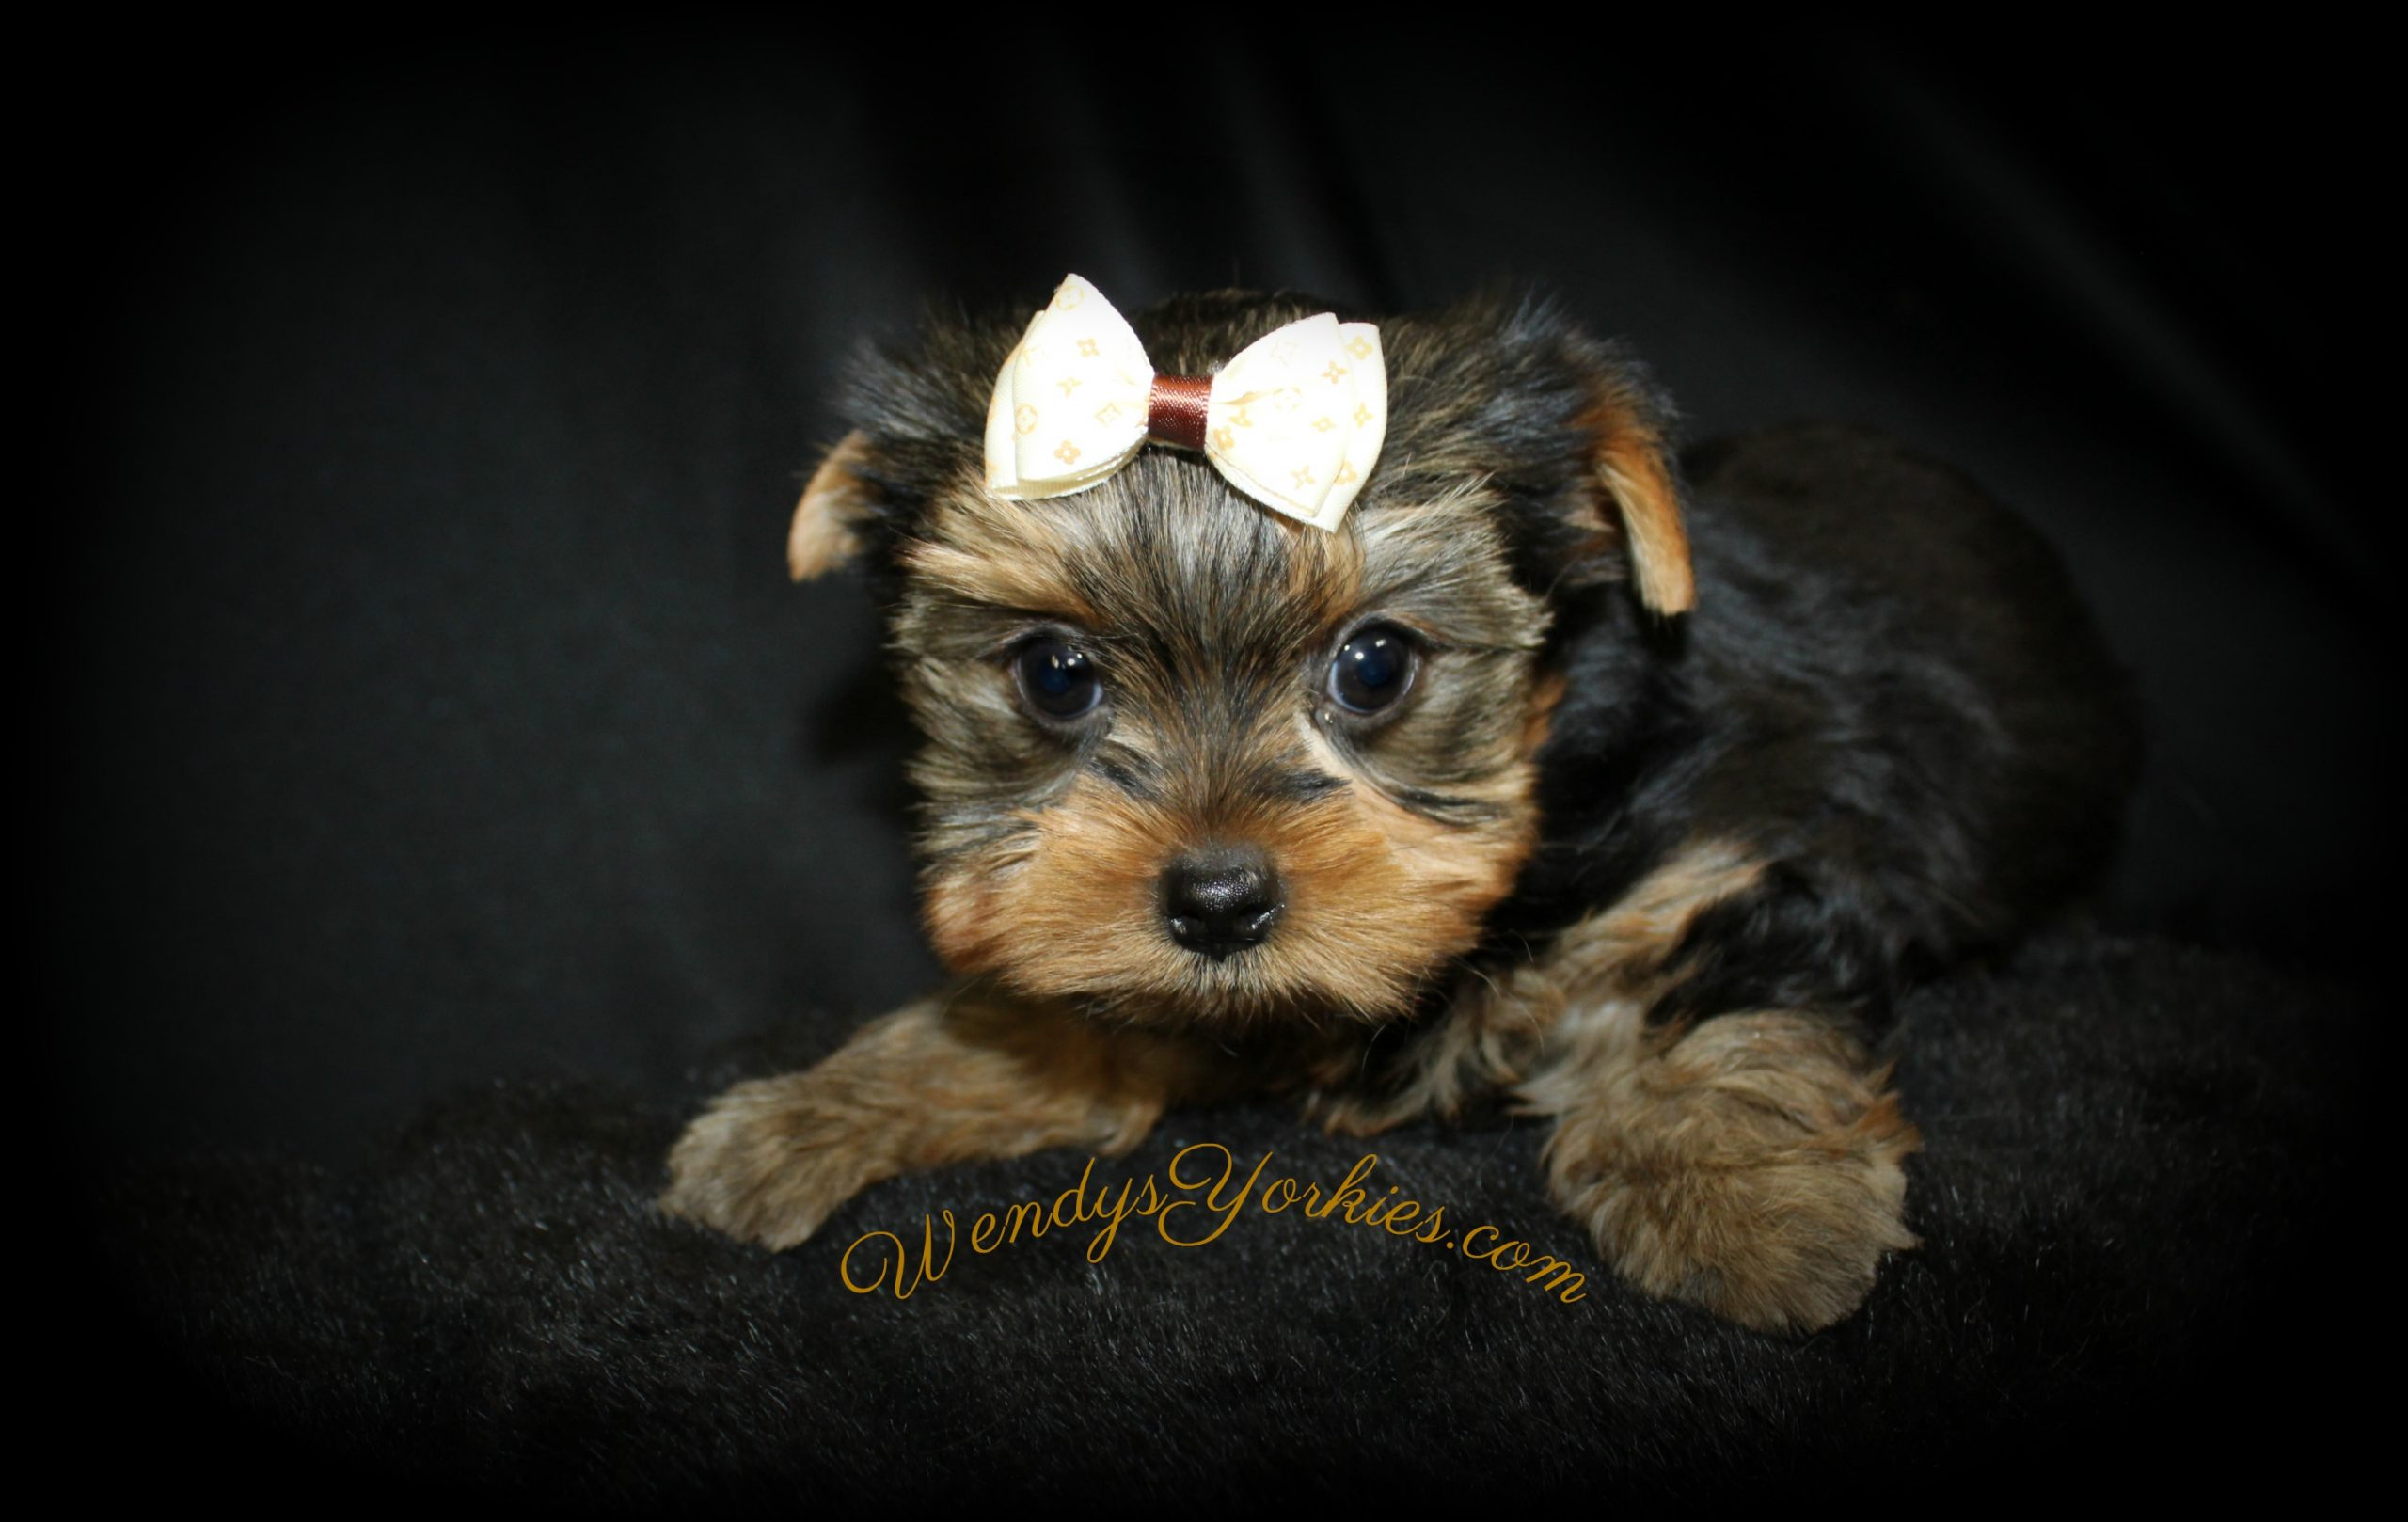 Yorkie puppies for sale in Texas, Harley tm1, WendysYorkies.com